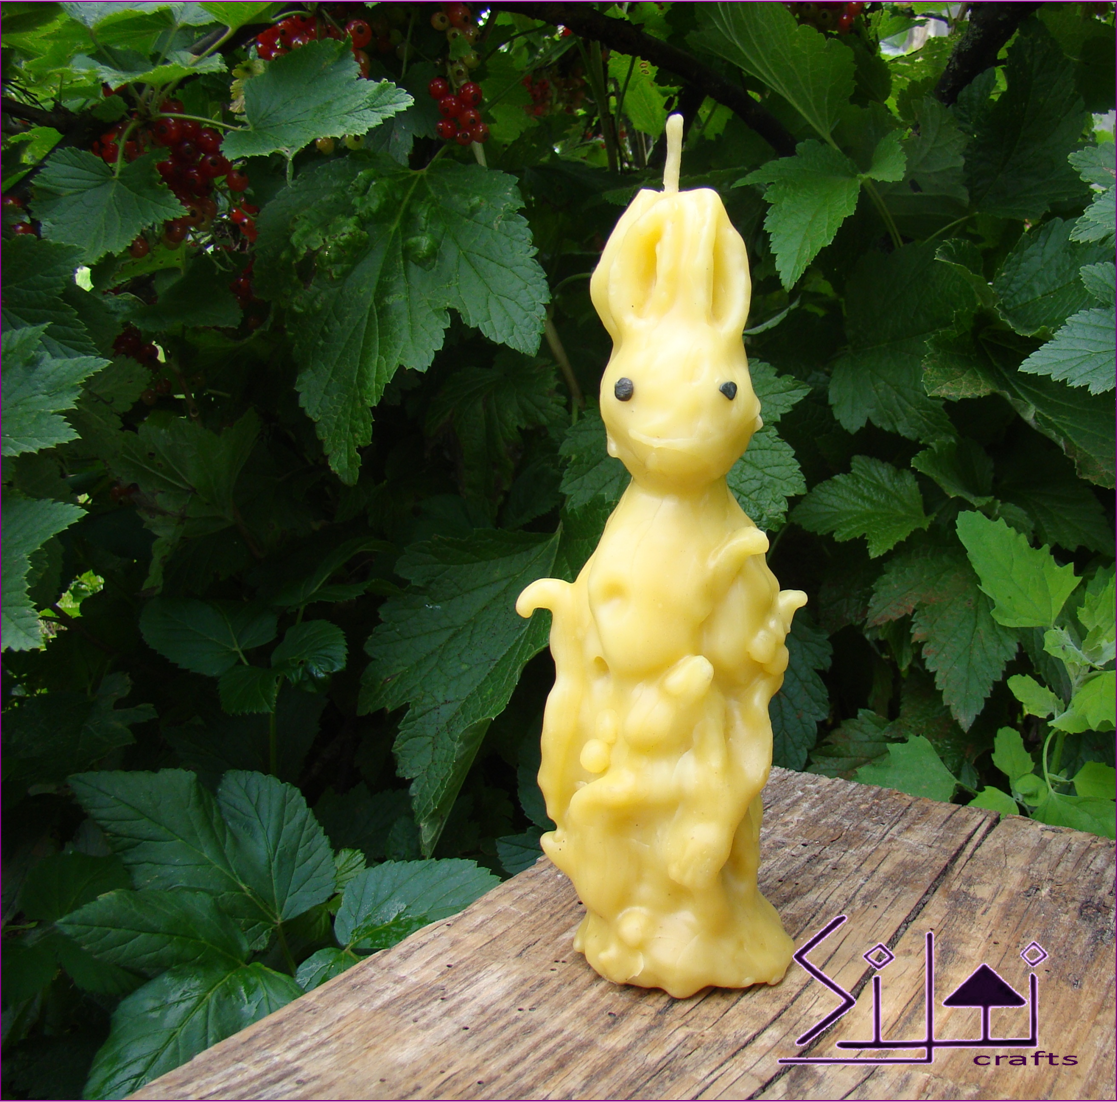 rabbit hare beeswax bunny unusual forest easter handsculpted sculpted rabbitcandle harecandle eastercandle forestcandle beeswaxcandle unusualcandle